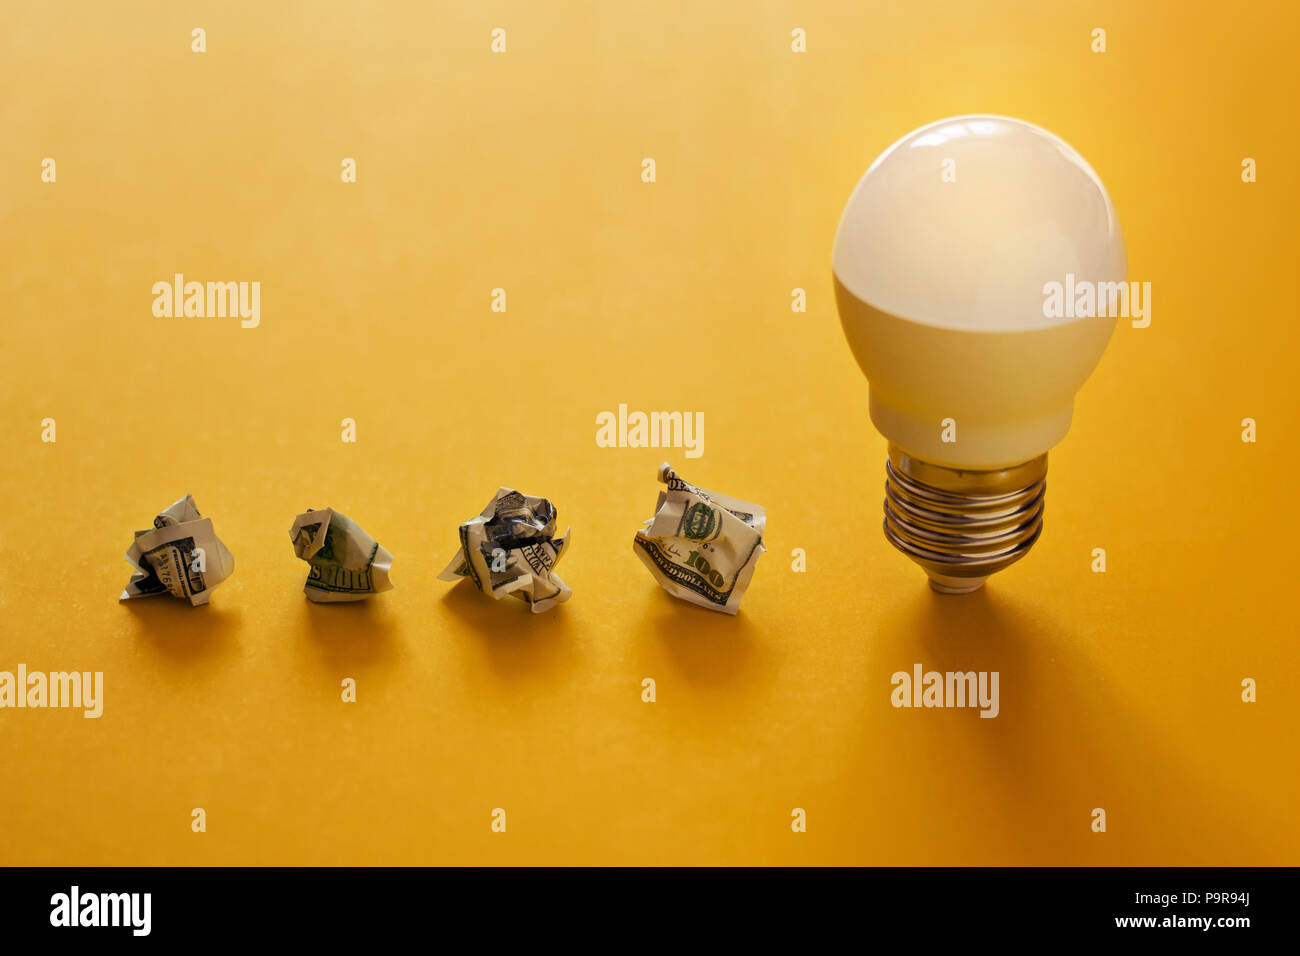 concept of energy saving. Lamp and crumpled dollar bills in a row on yellow background - Stock Image